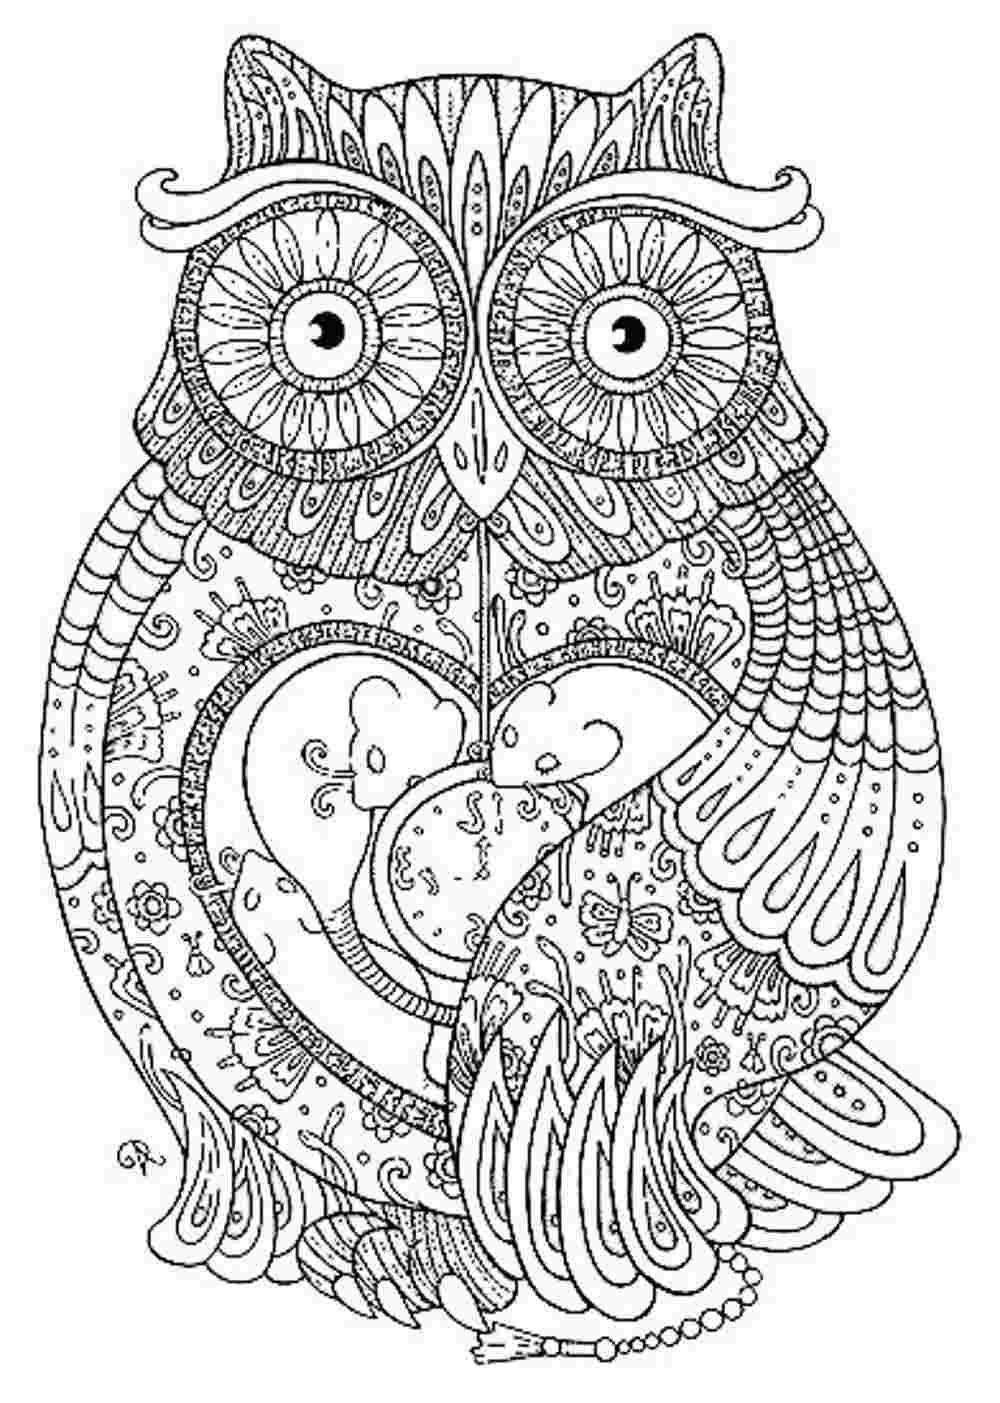 Free mandala coloring pages to print - Animal Mandala Coloring Pages To Download And Print For Free